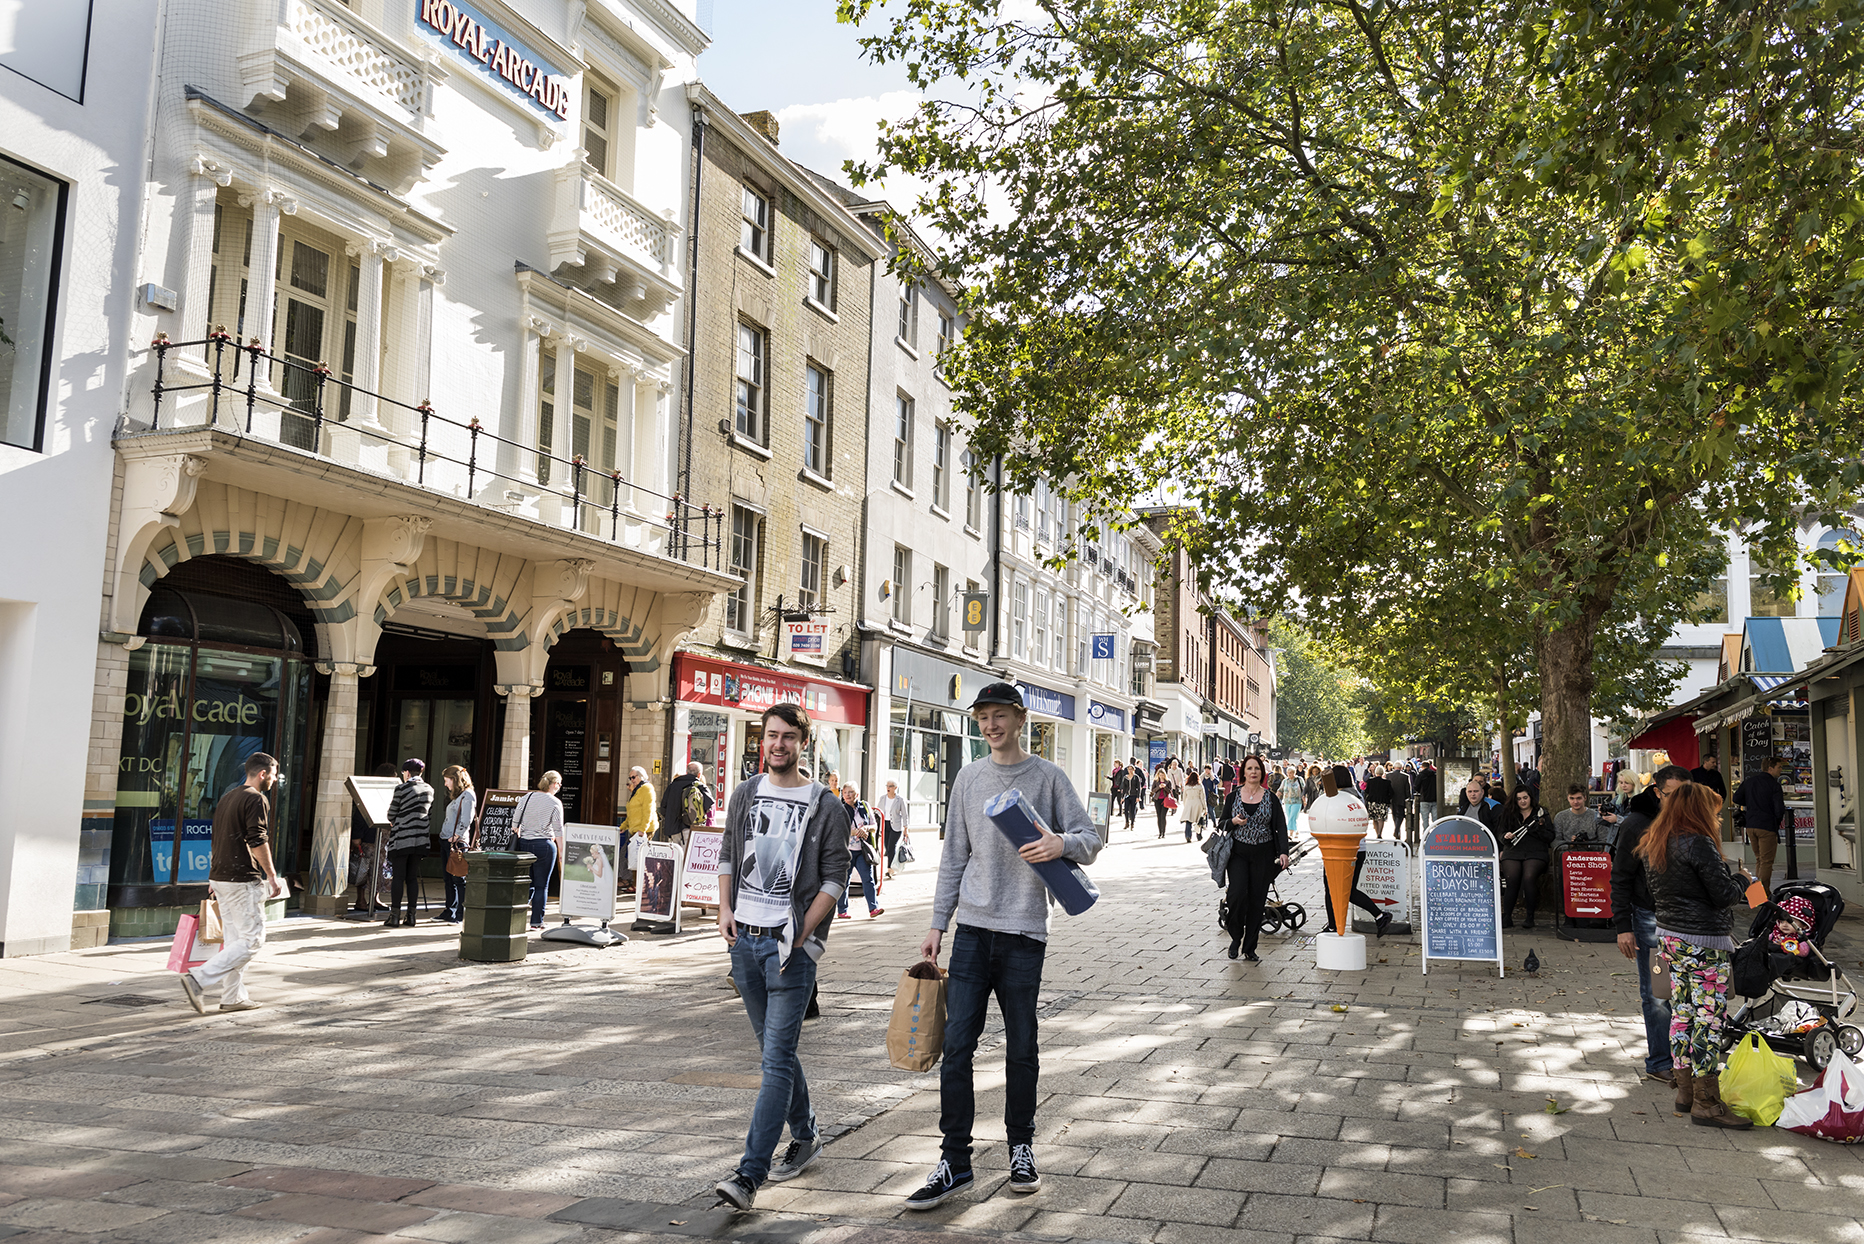 People walking along a street in Norwich during the day